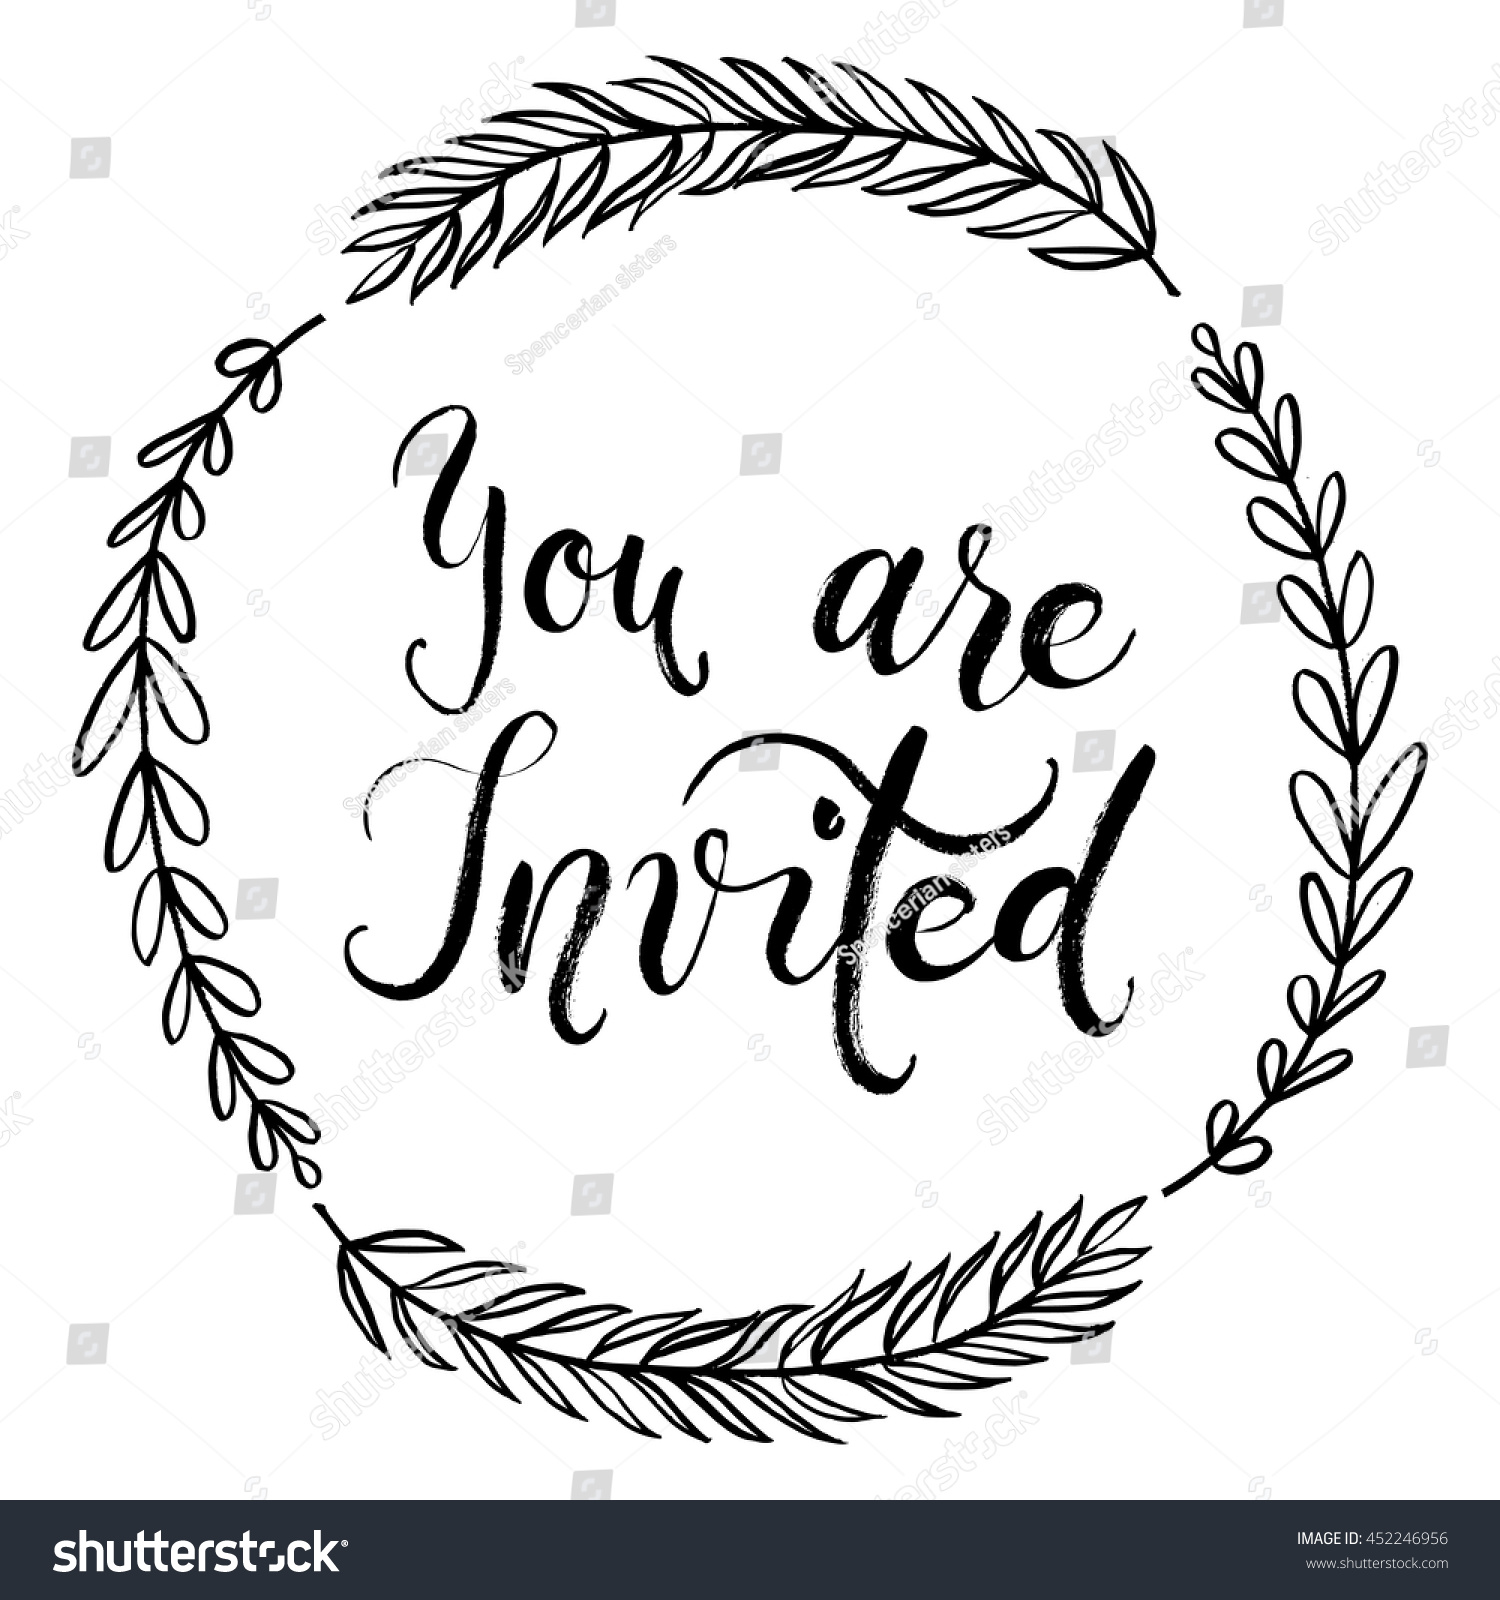 you invited party invitation card vector stock vector 452246956 shutterstock. Black Bedroom Furniture Sets. Home Design Ideas